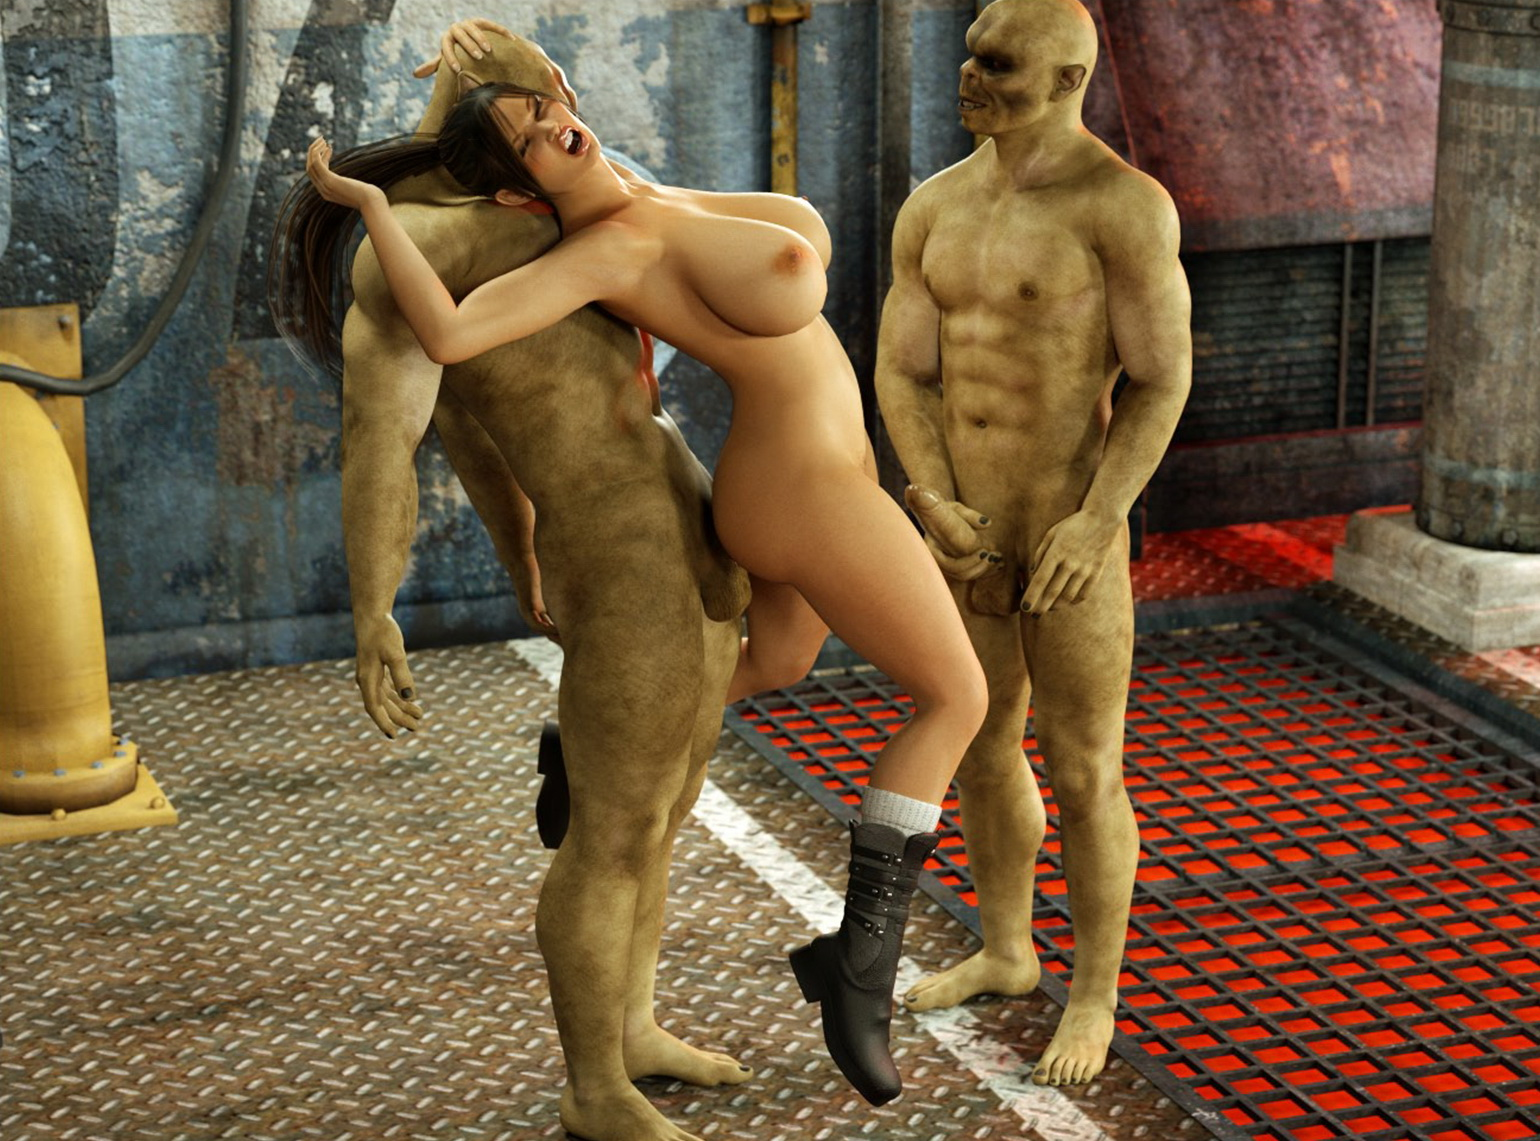 3d animation s e x movie-most popular  adult pictures